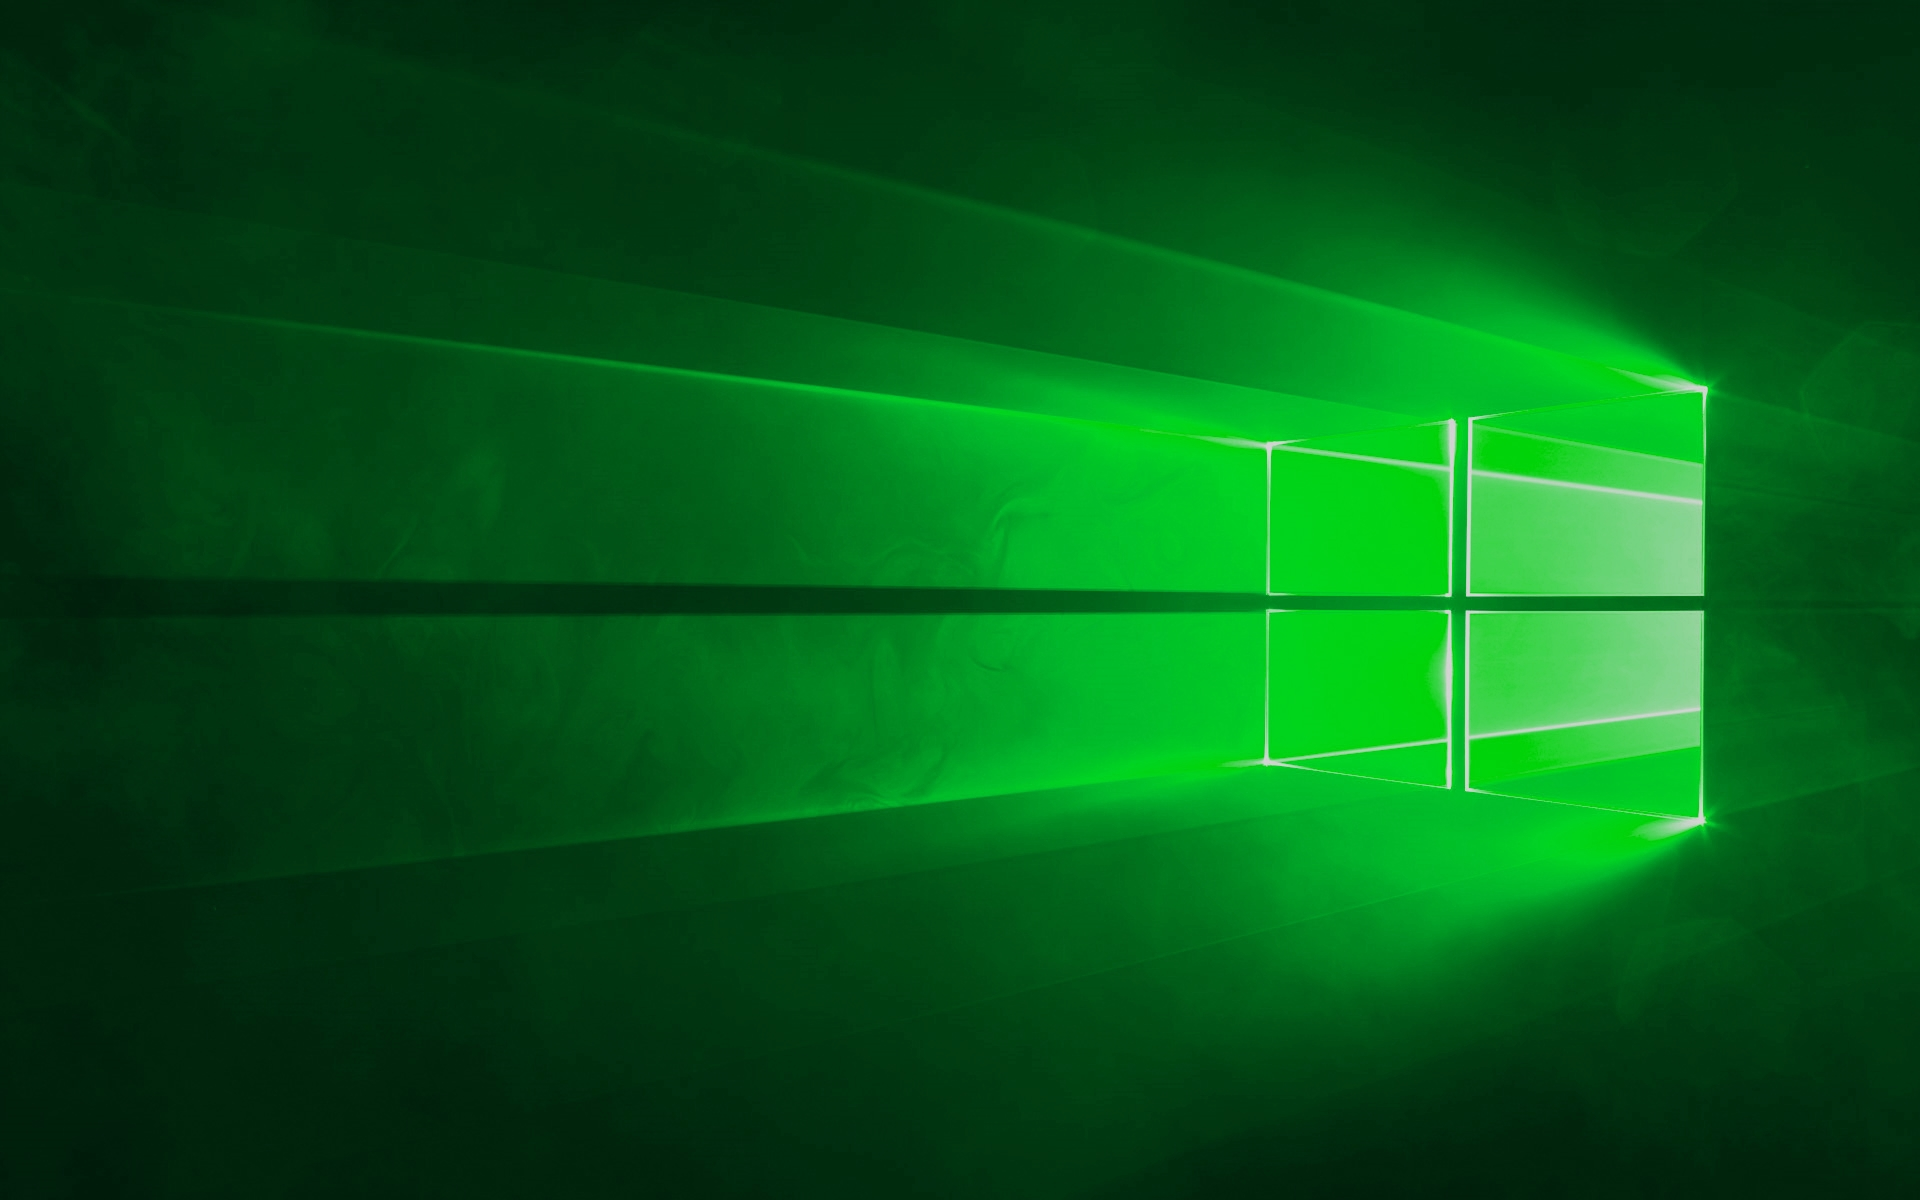 Windows 10 Green